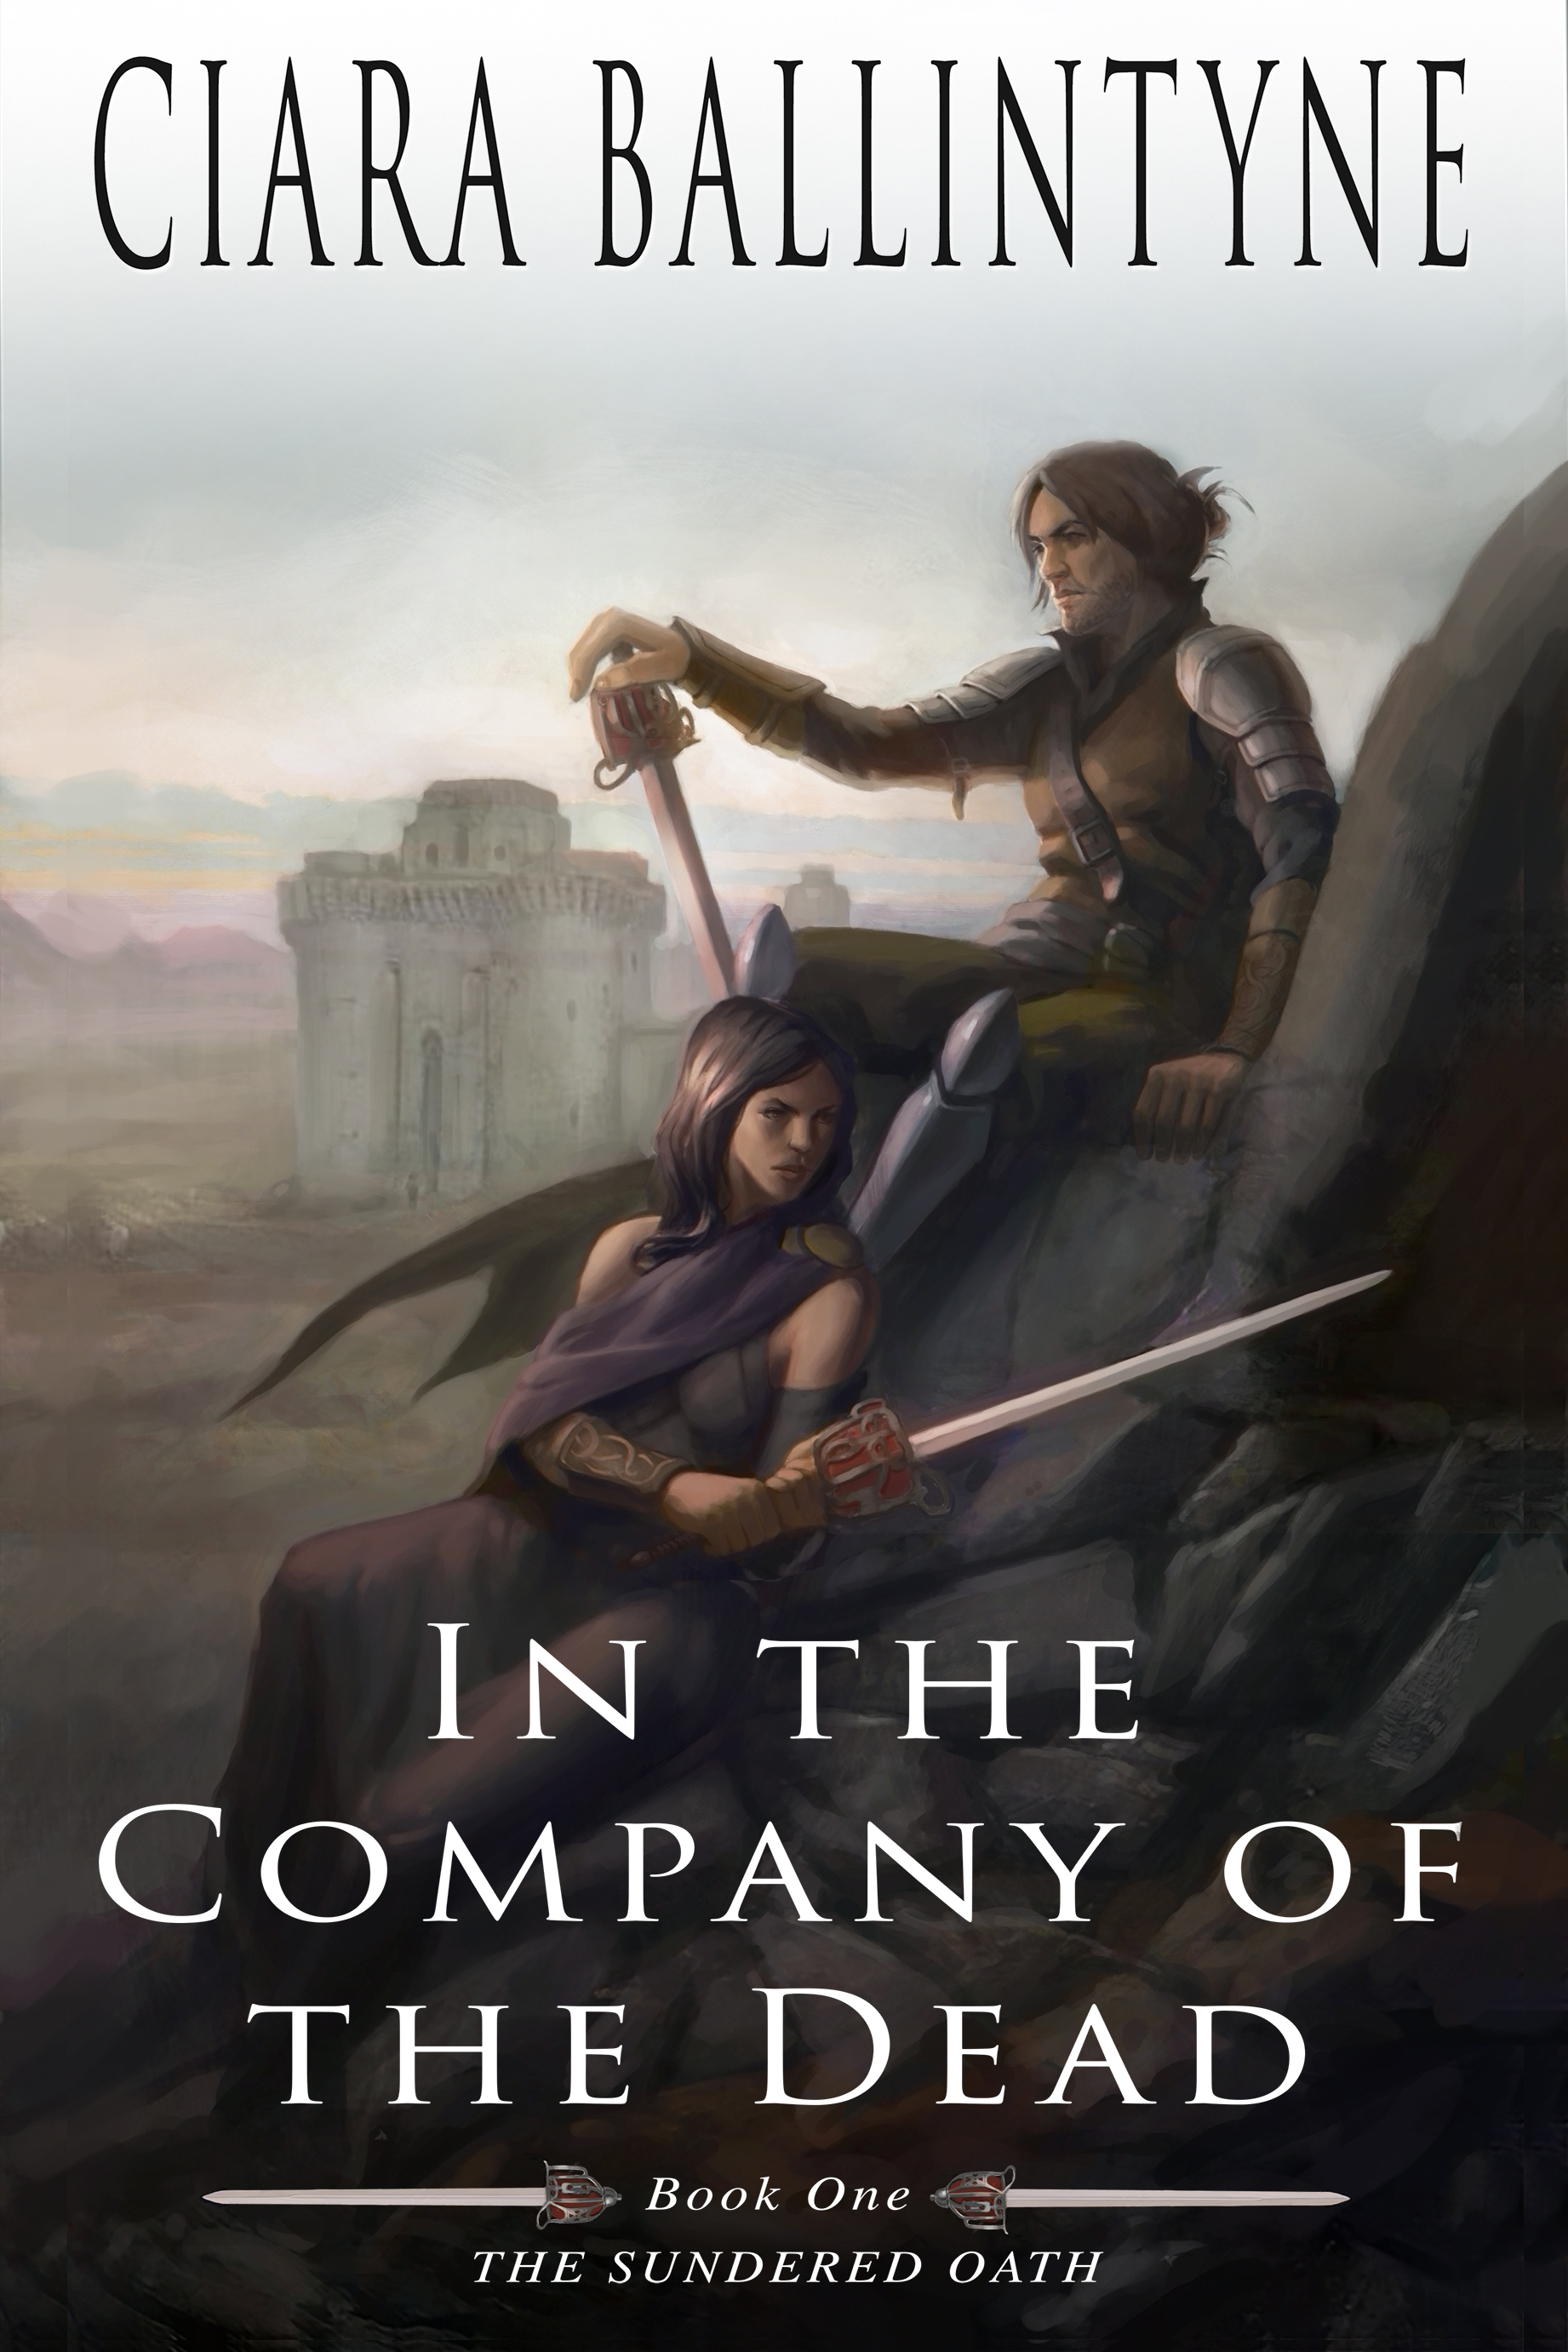 InTheCompanyOfTheDead_300dpi_1842x2763 FINAL